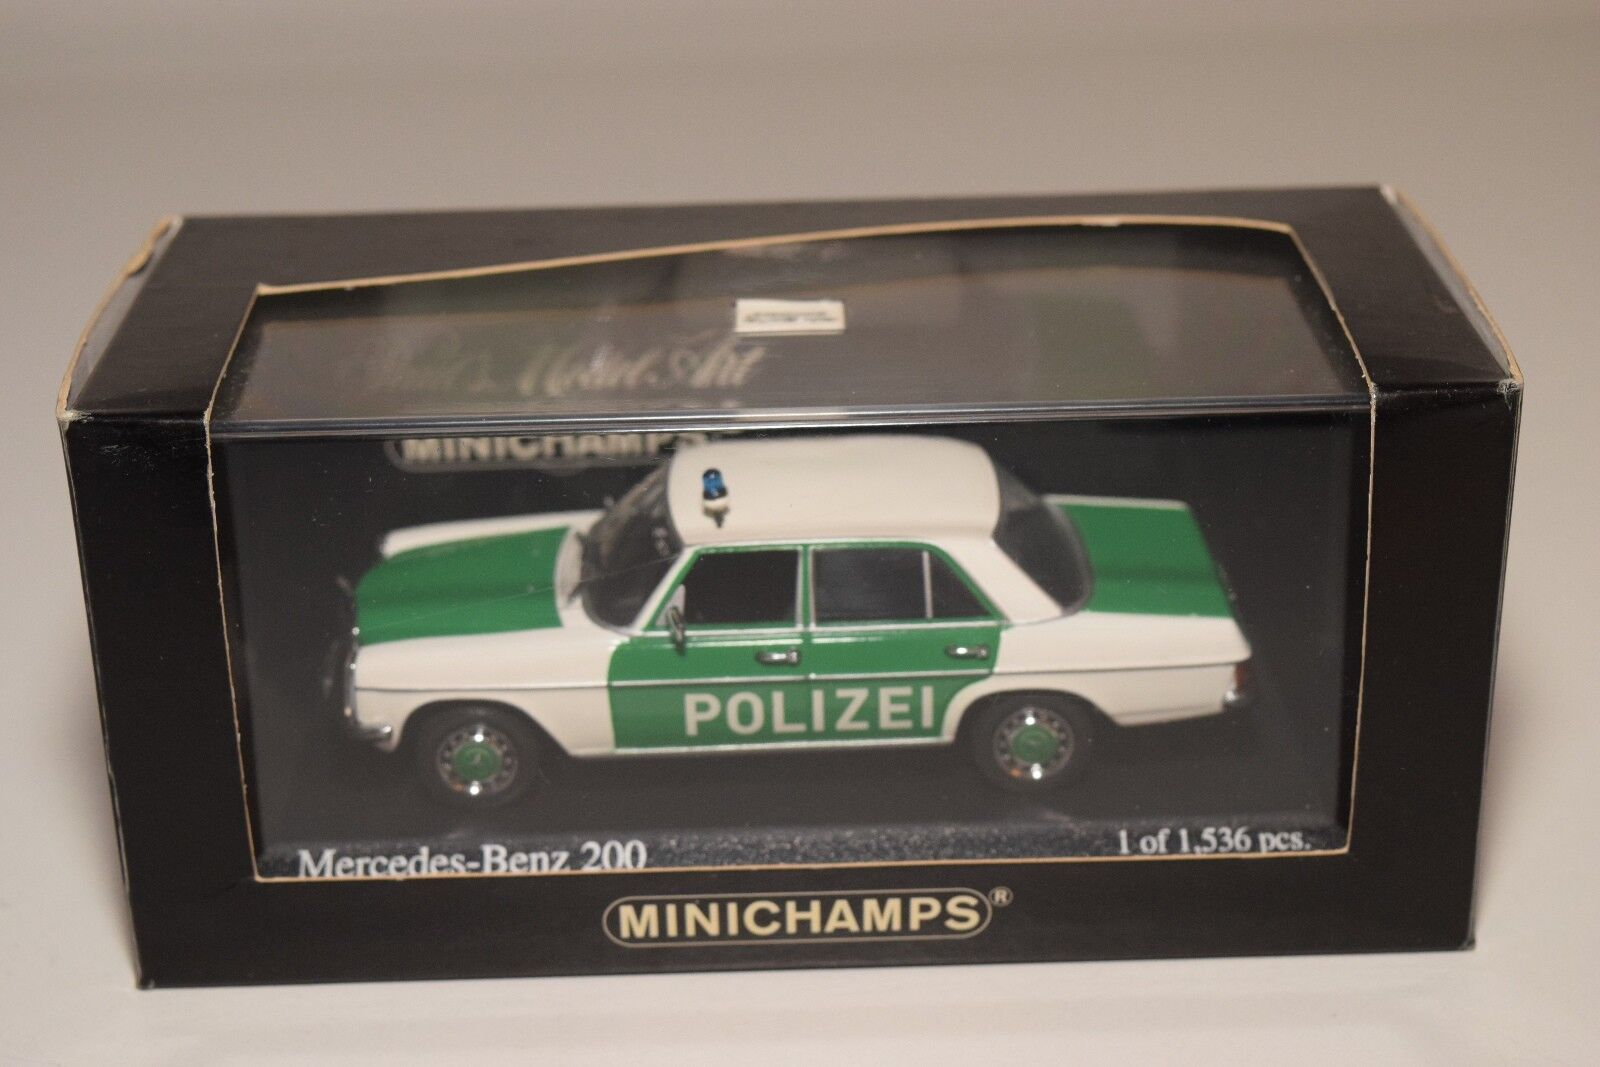 F MINICHAMPS MINICHAMPS MINICHAMPS MERCEDES-BENZ 200 POLIZEI GERMAN POLICE MINT BOXED 3be058